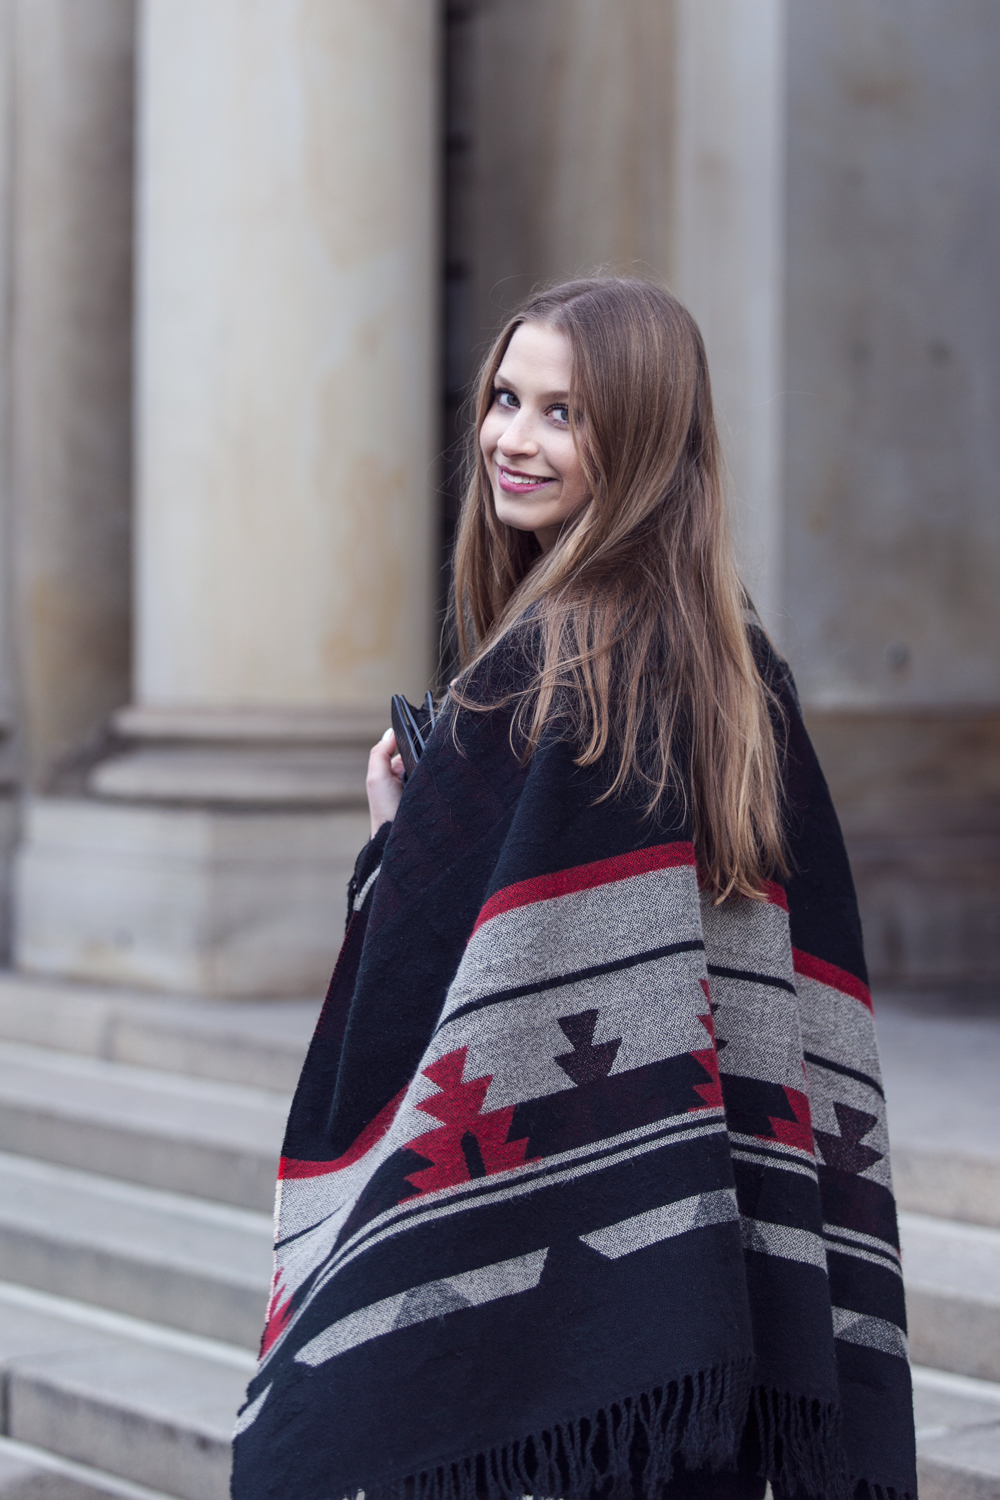 Aztec eye catchers! Rock your blanket poncho as accessory.